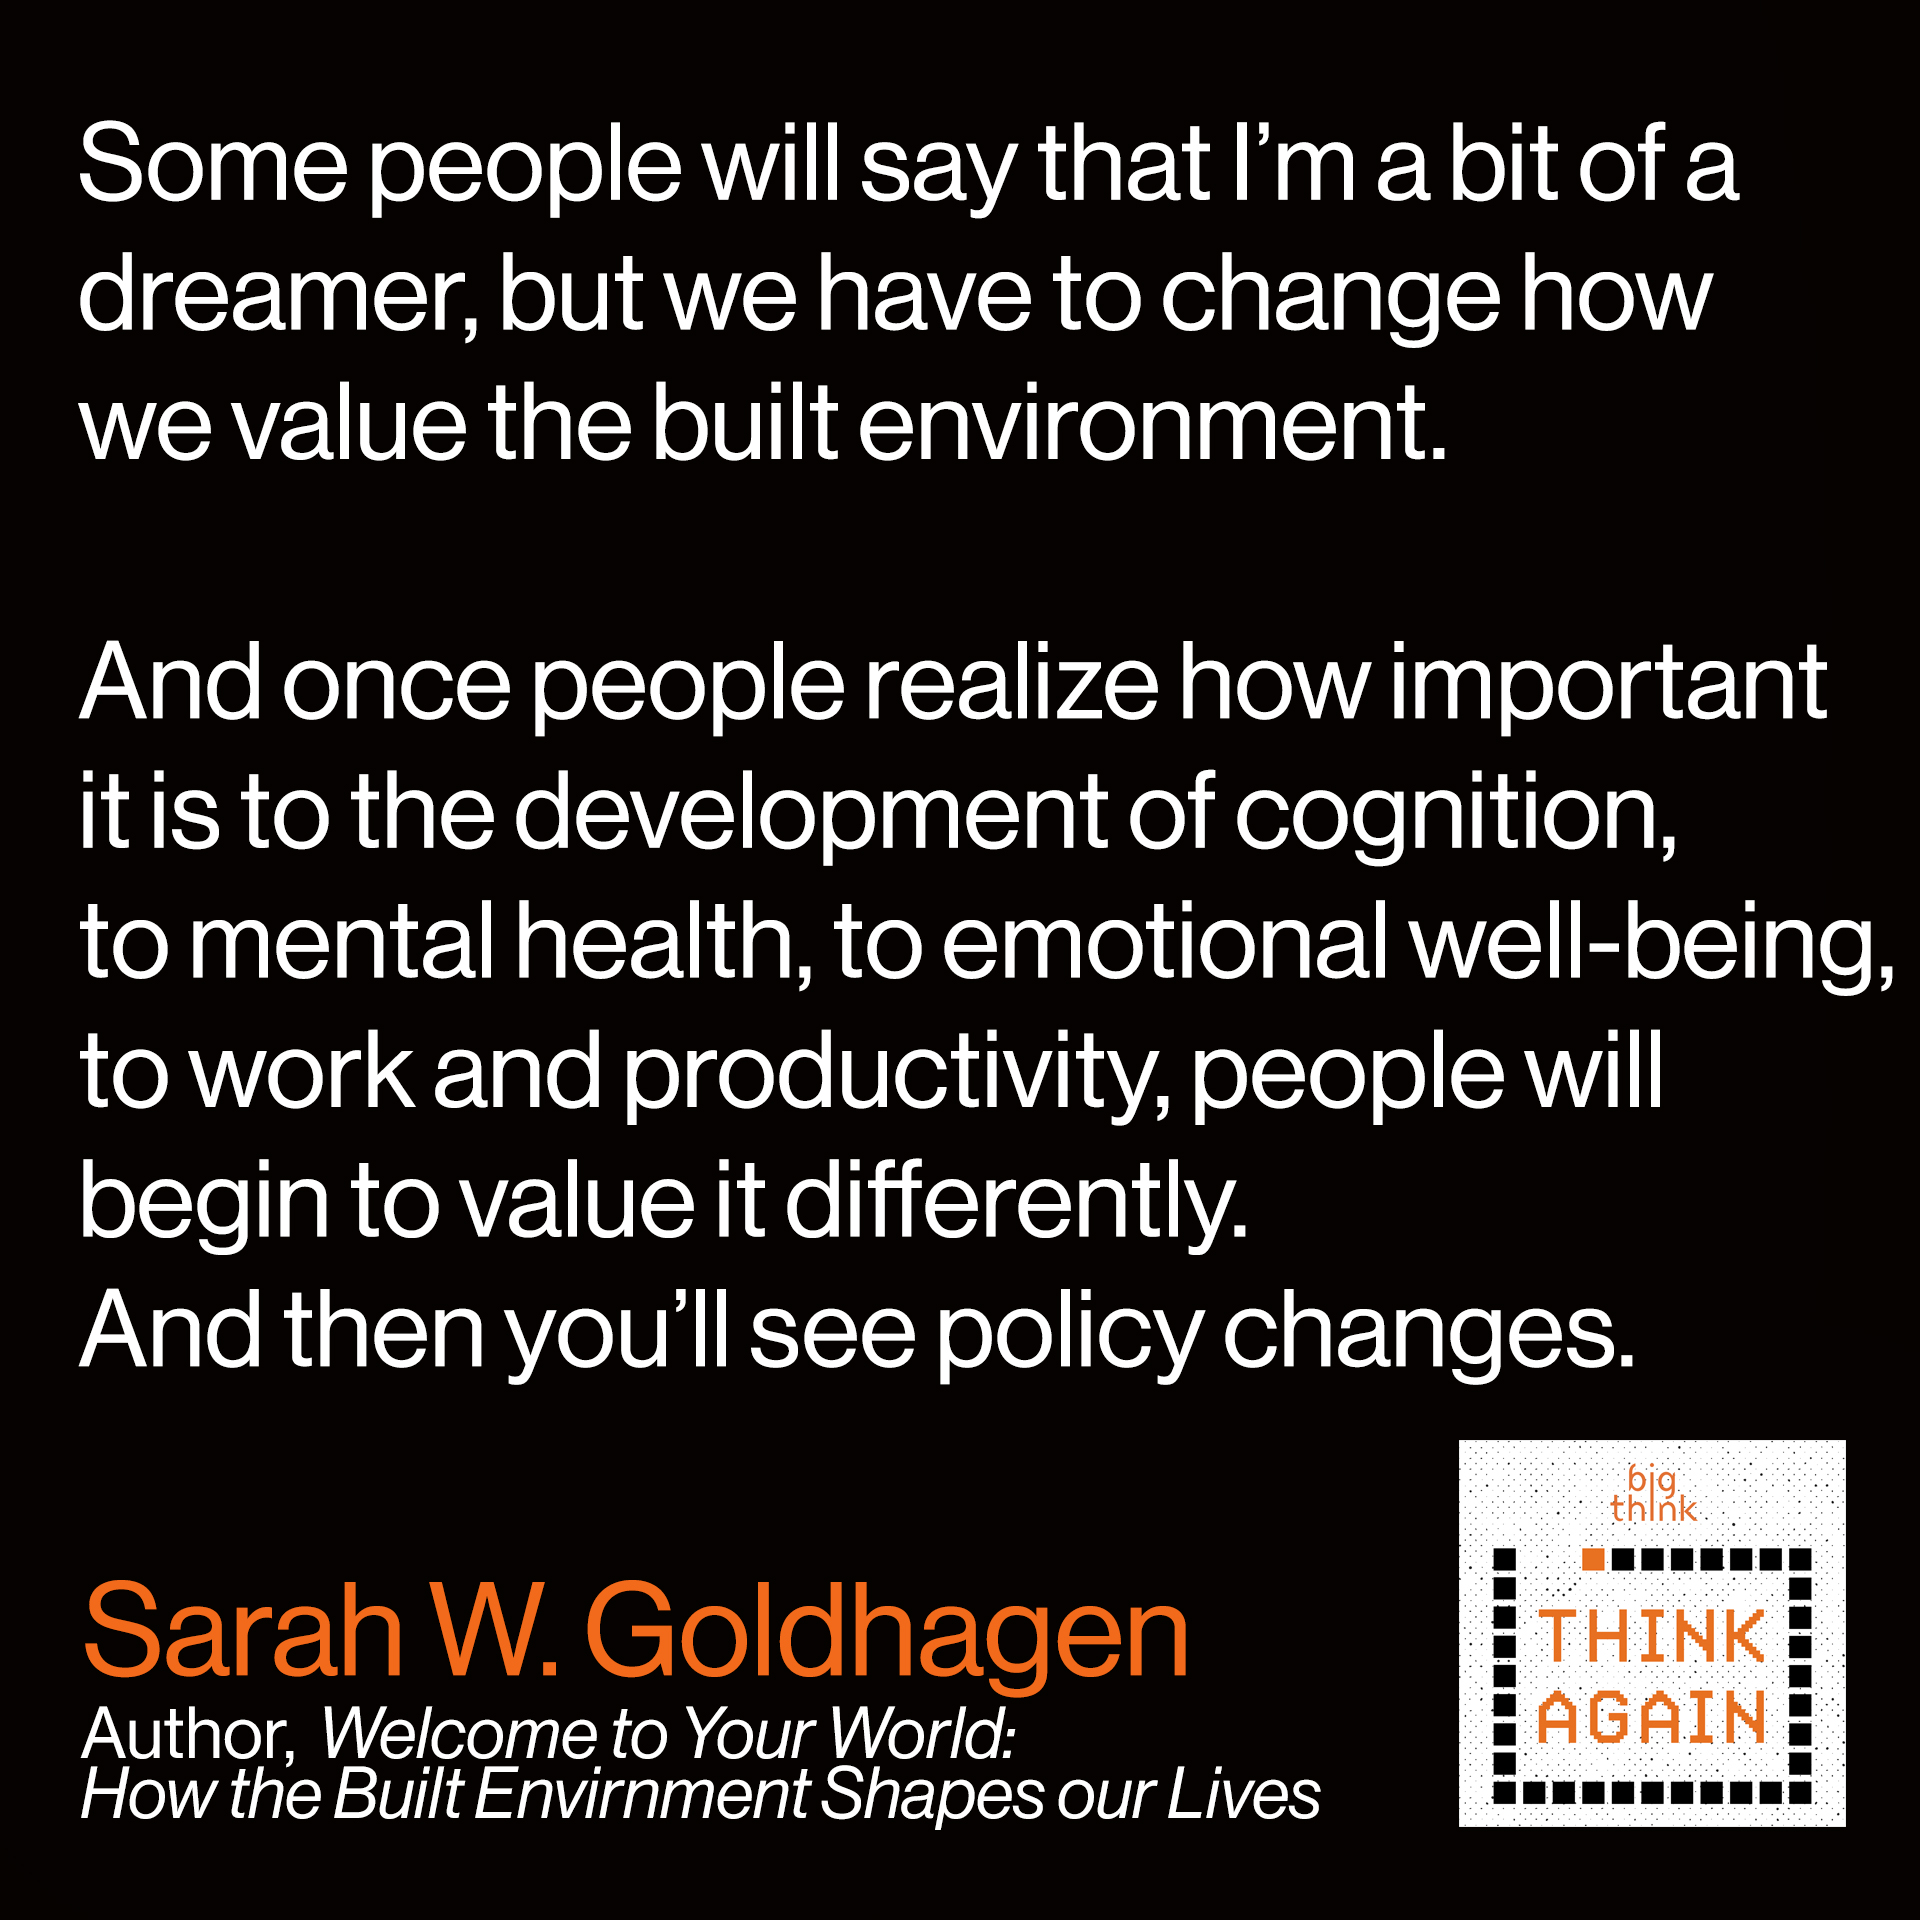 Sarah W. Goldhagen Quote: Some people will say that I'm a bit of a dreamer,  but we have to change how we value the built environment.  And once people realize how important it is to  the development of cognition, to mental health,  to emotional well being, to work and productivity,  people will begin to value it differently and then  you'll begin to see policy changes.